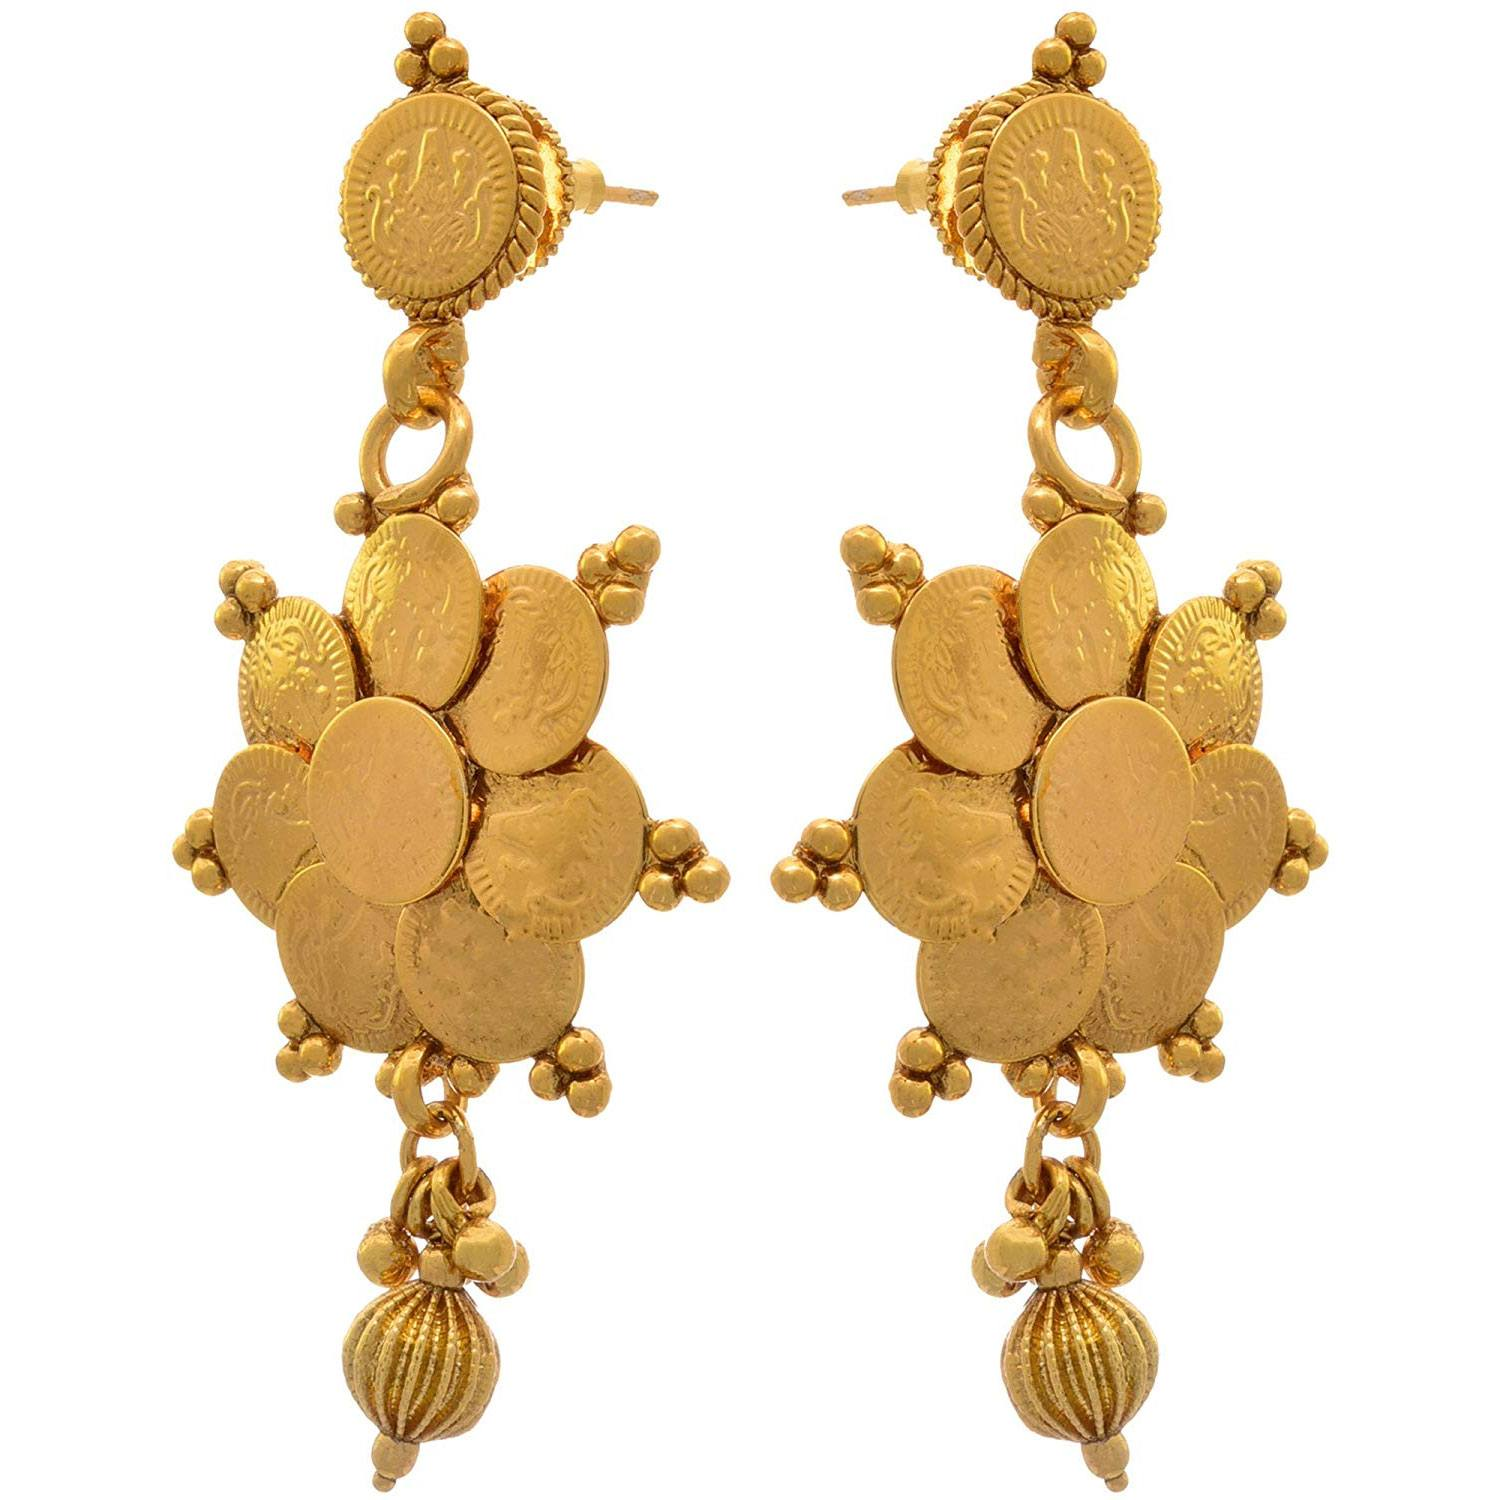 JFL - Traditional Ethnic Temple Laxmi Goddess Coin One Gram Gold Plated Designer Long Necklace Set for Women & Girls.